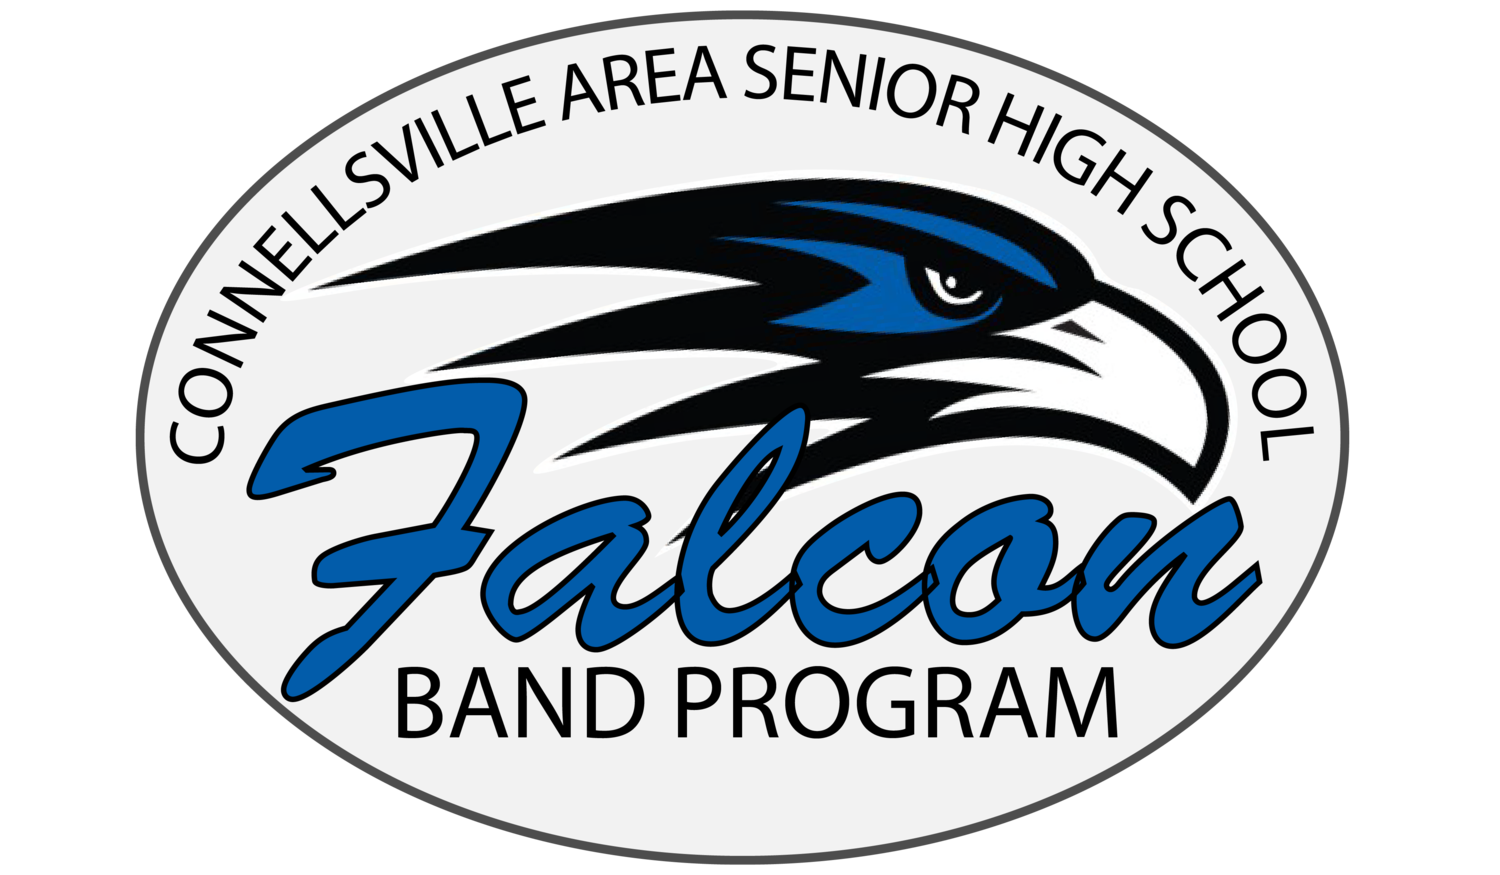 Connellsville Area Senior High School Bands